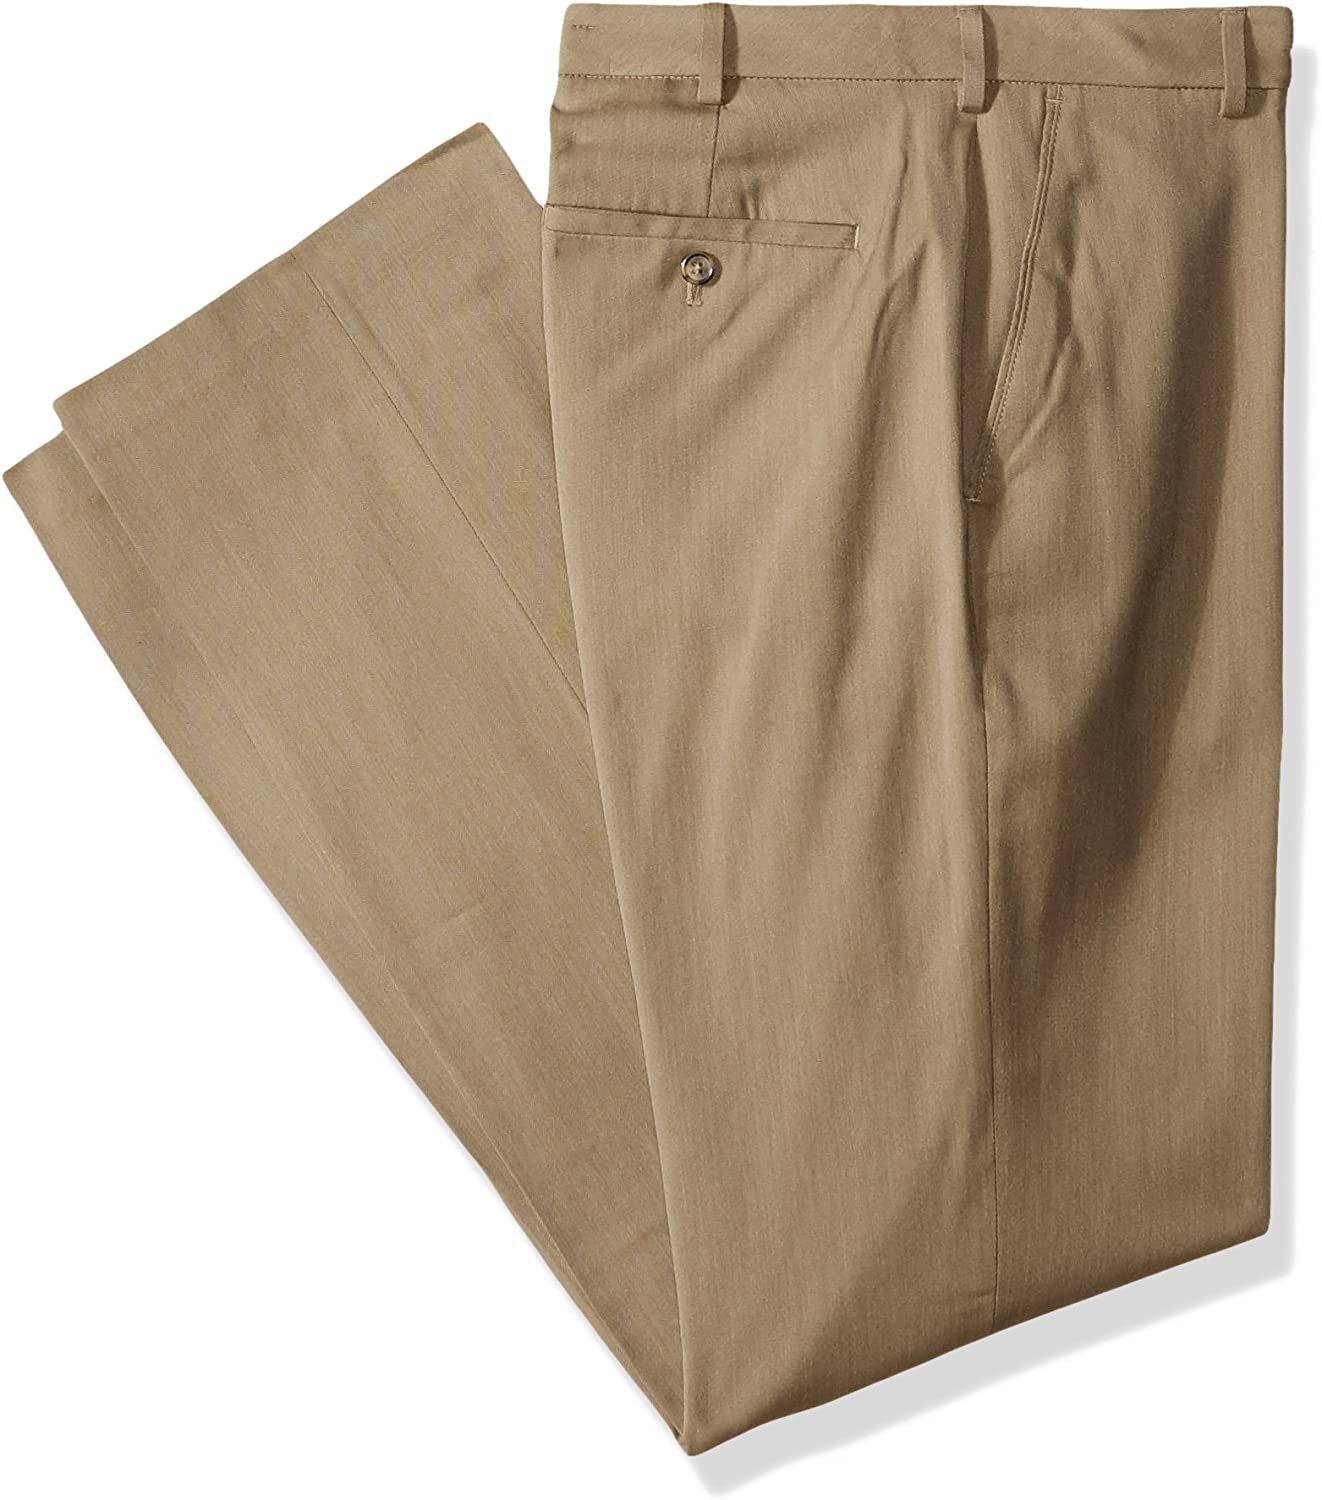 Van Heusen Men's Price reduction We OFFer at cheap prices Big and Tall Air Straight Fit Stretch Fron Flat